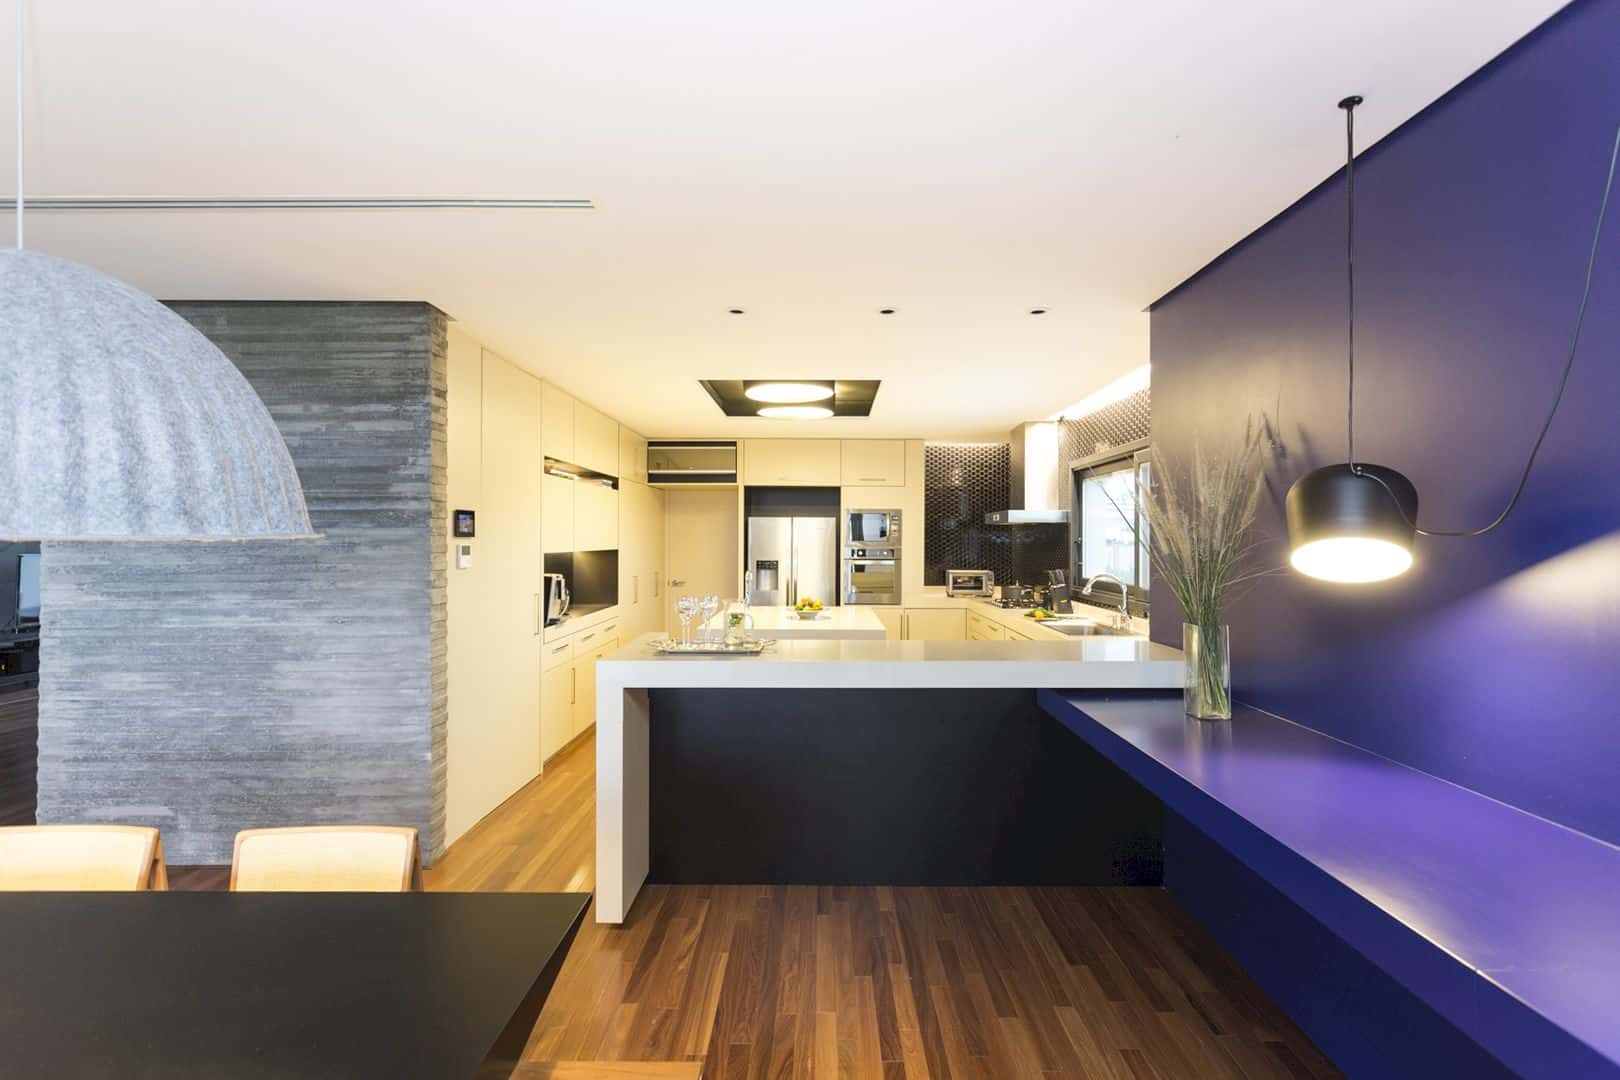 Casa R & L An Interior That Reflects Welcoming Personalities And Minimalist Aesthetics 15